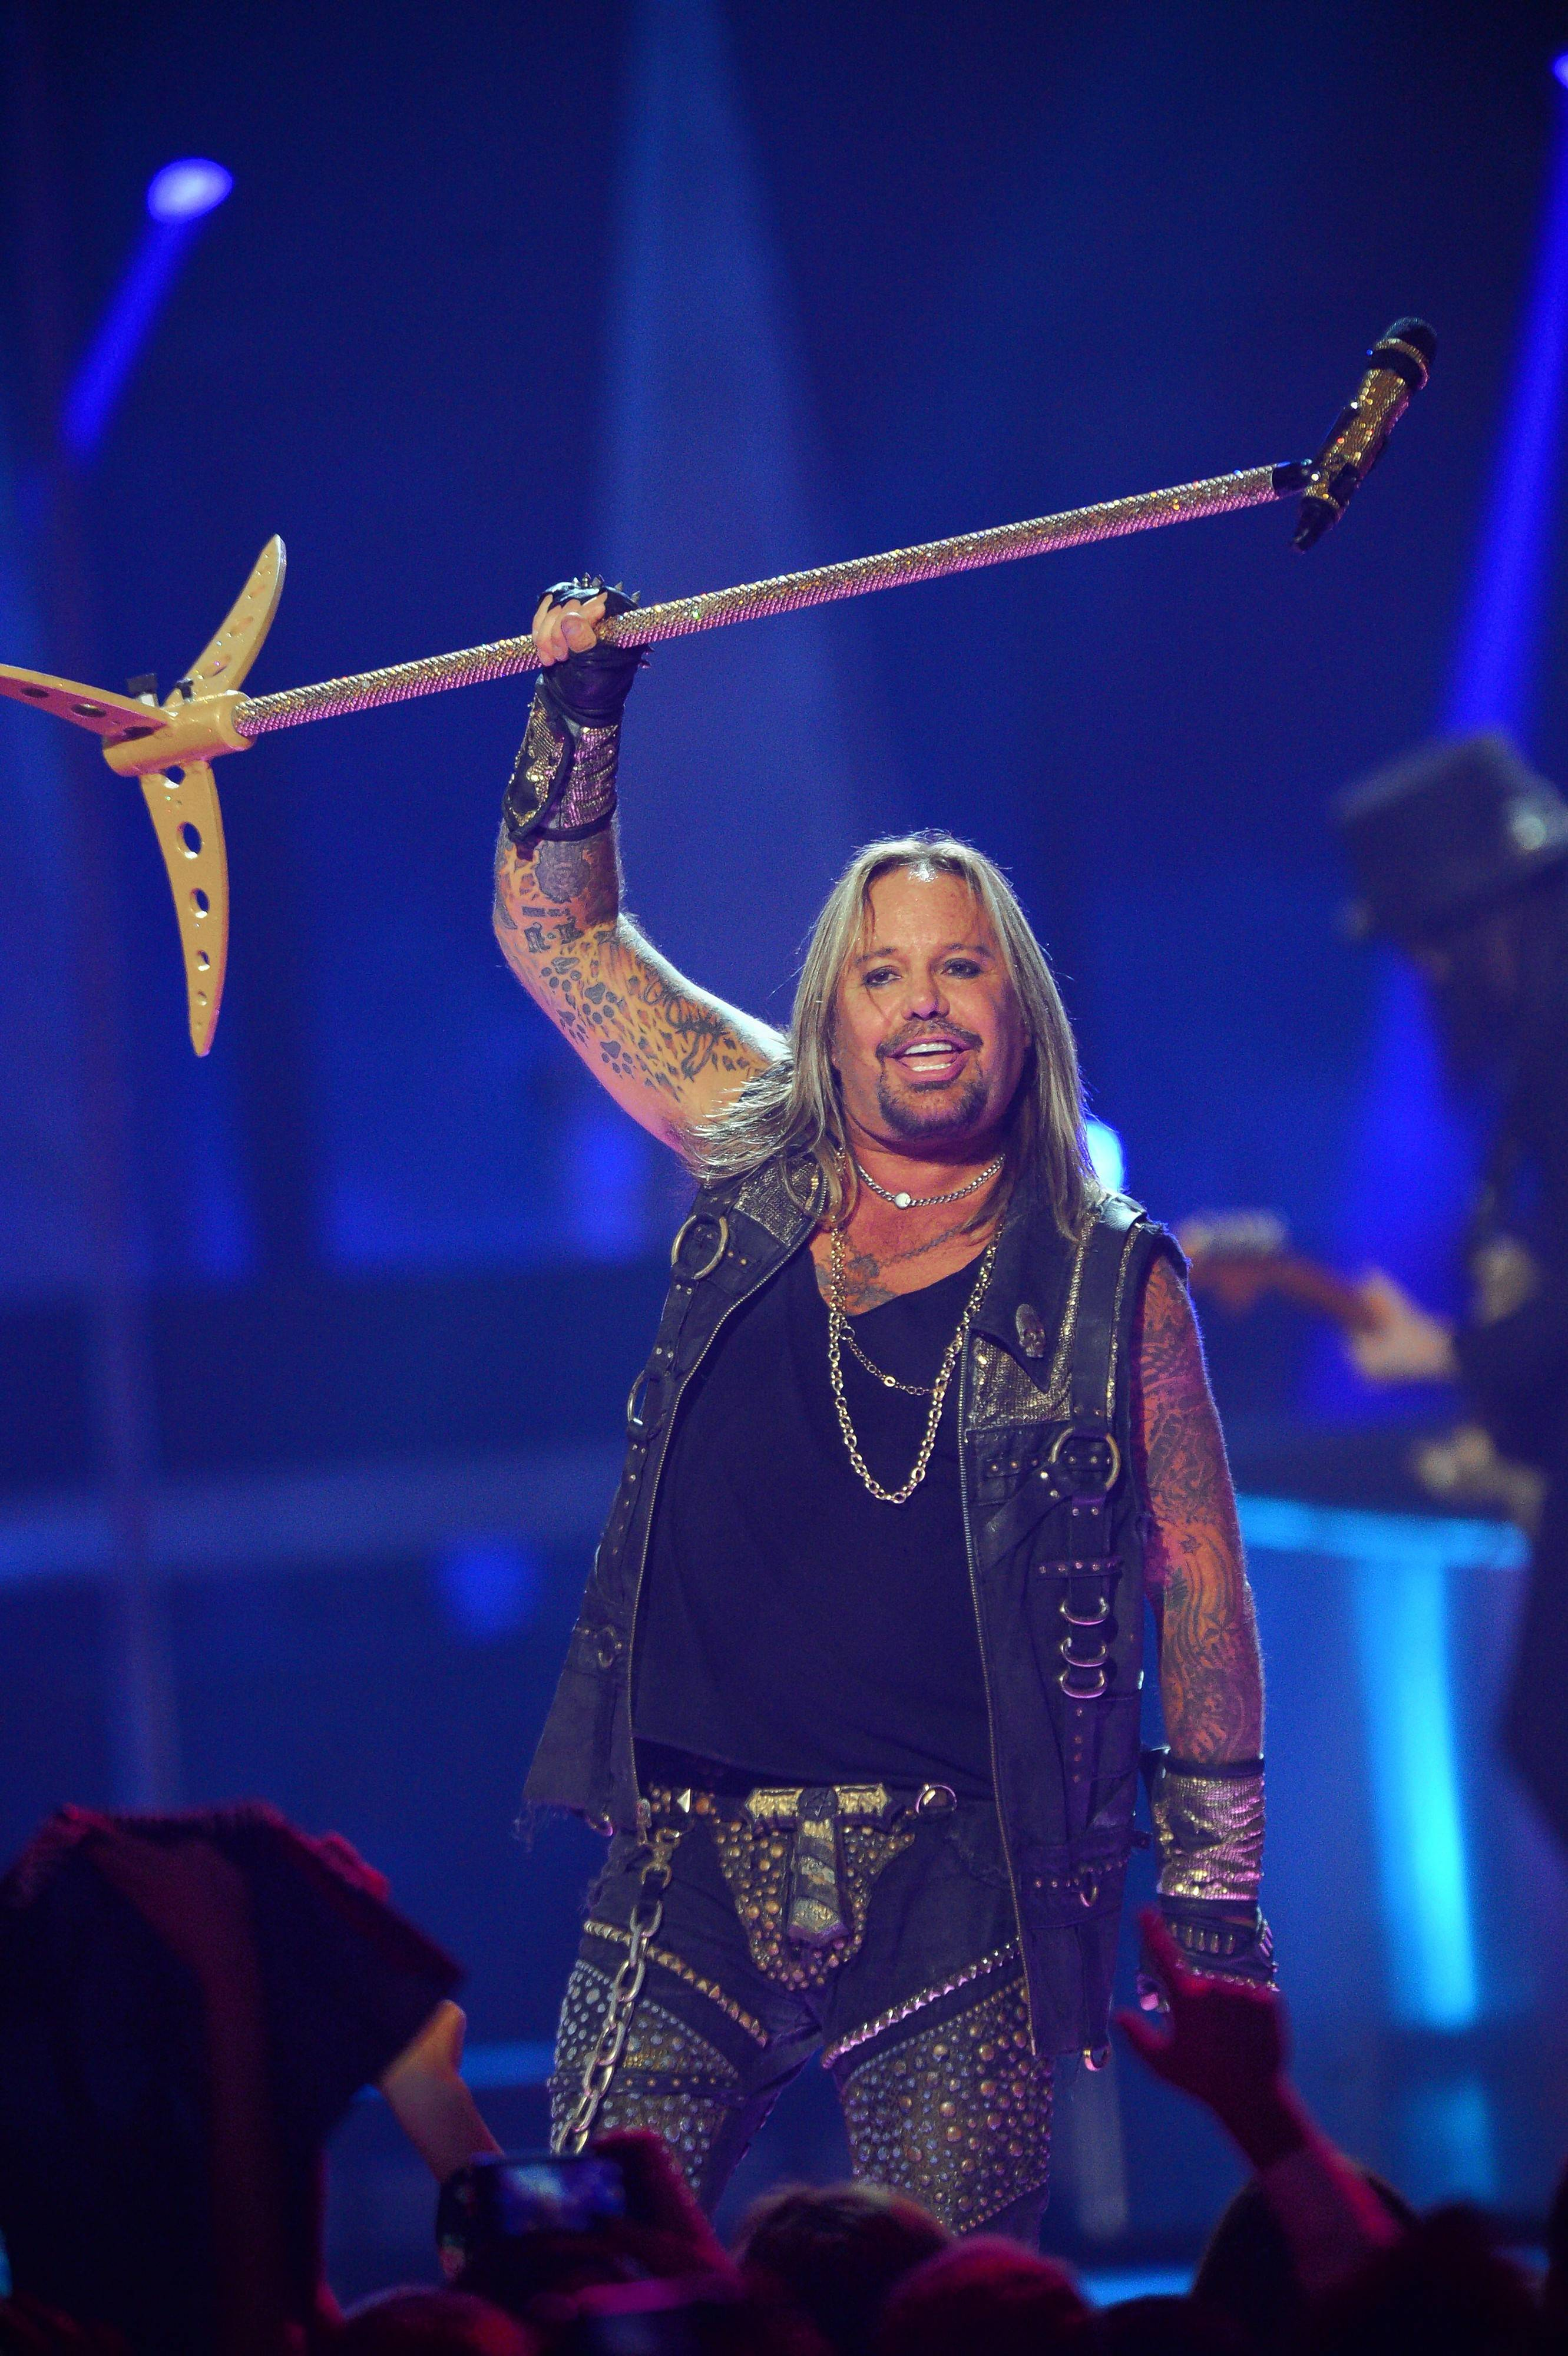 Motley Crue front man Vince Neil performs at the Arcada Theatre Saturday, July 14.